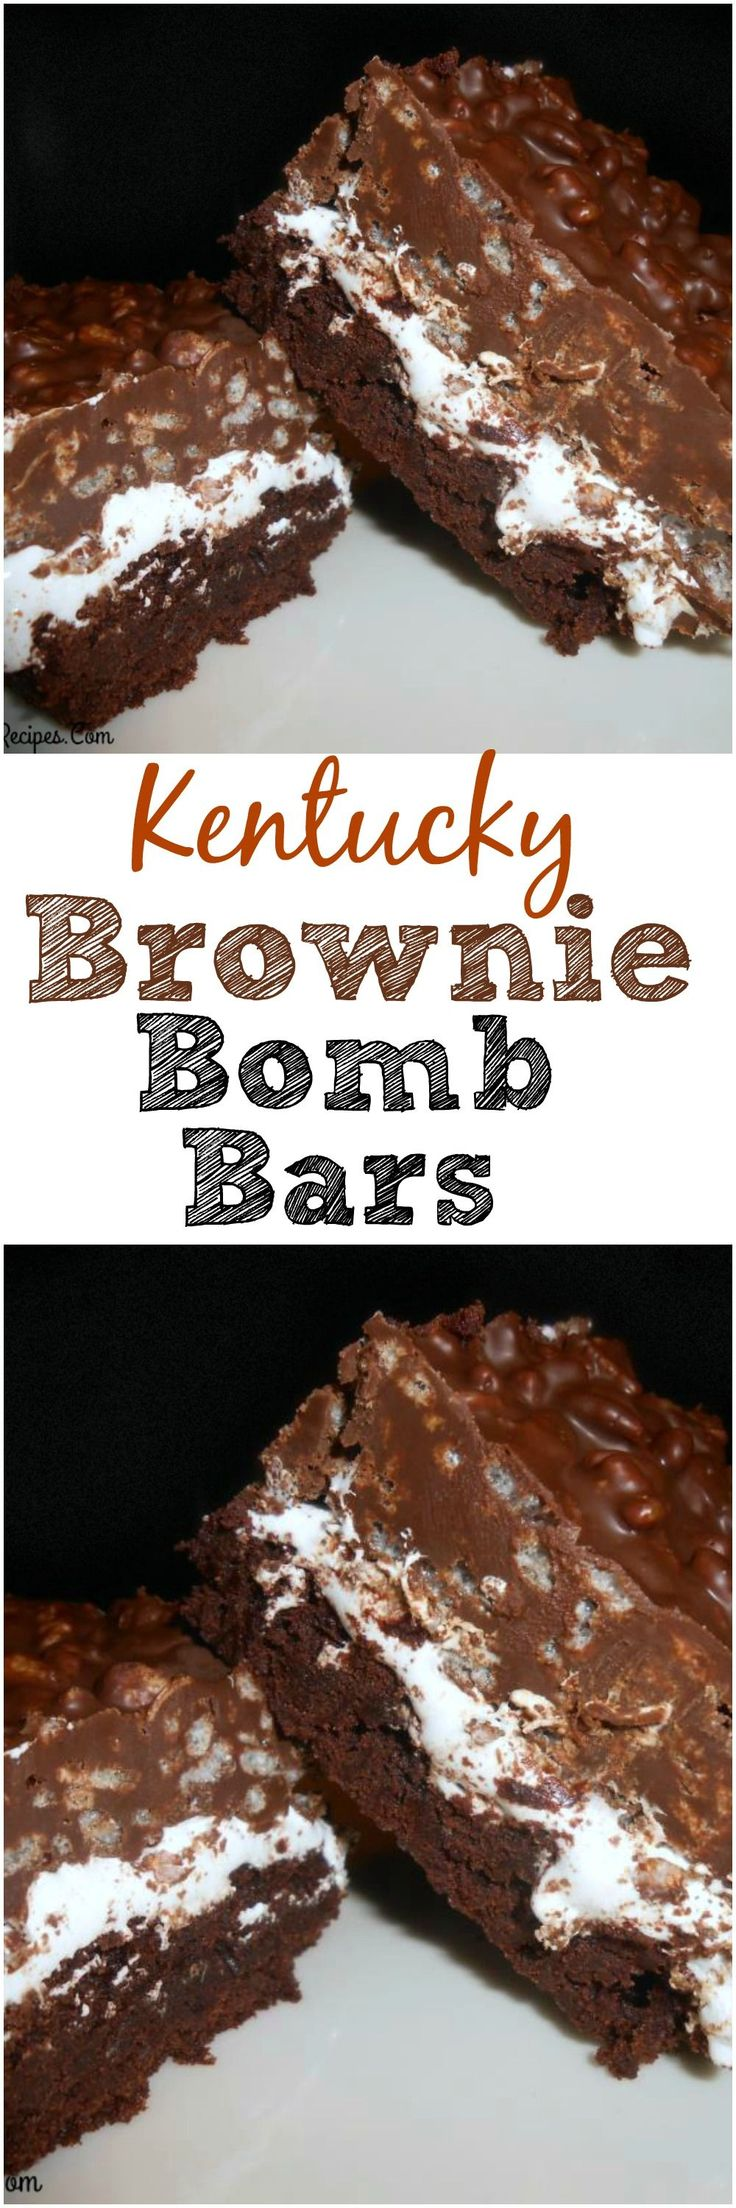 Kentucky Brownie BOMB Bars! These sound amazing!